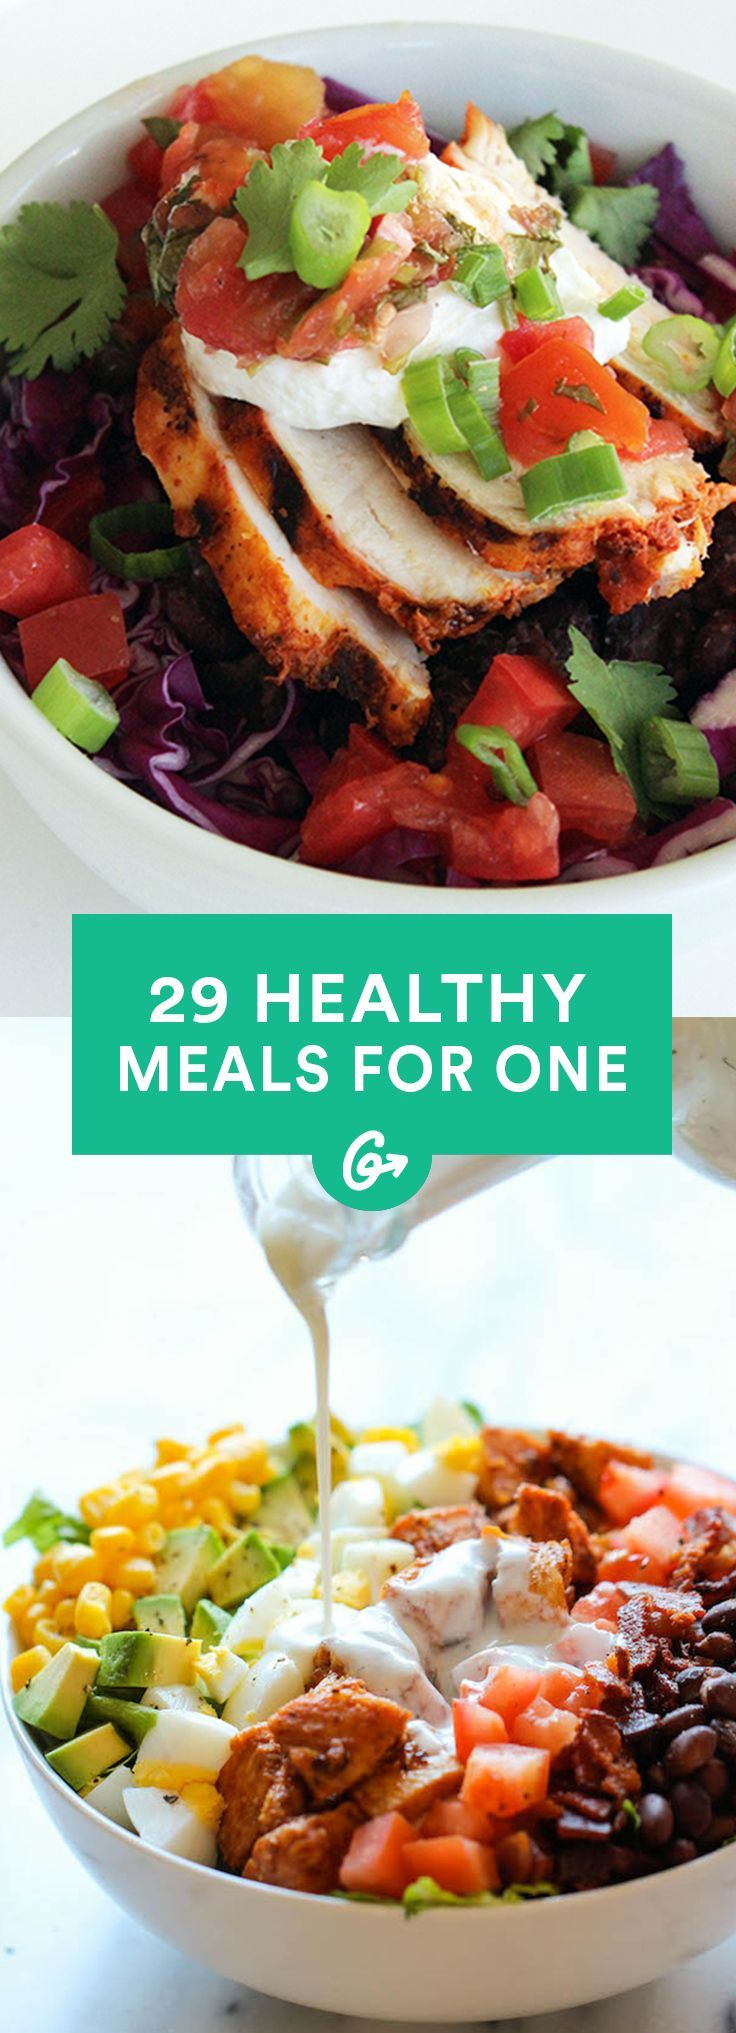 Cooking For One 25 Insanely Easy Healthy Meals You Can Make In Minutes